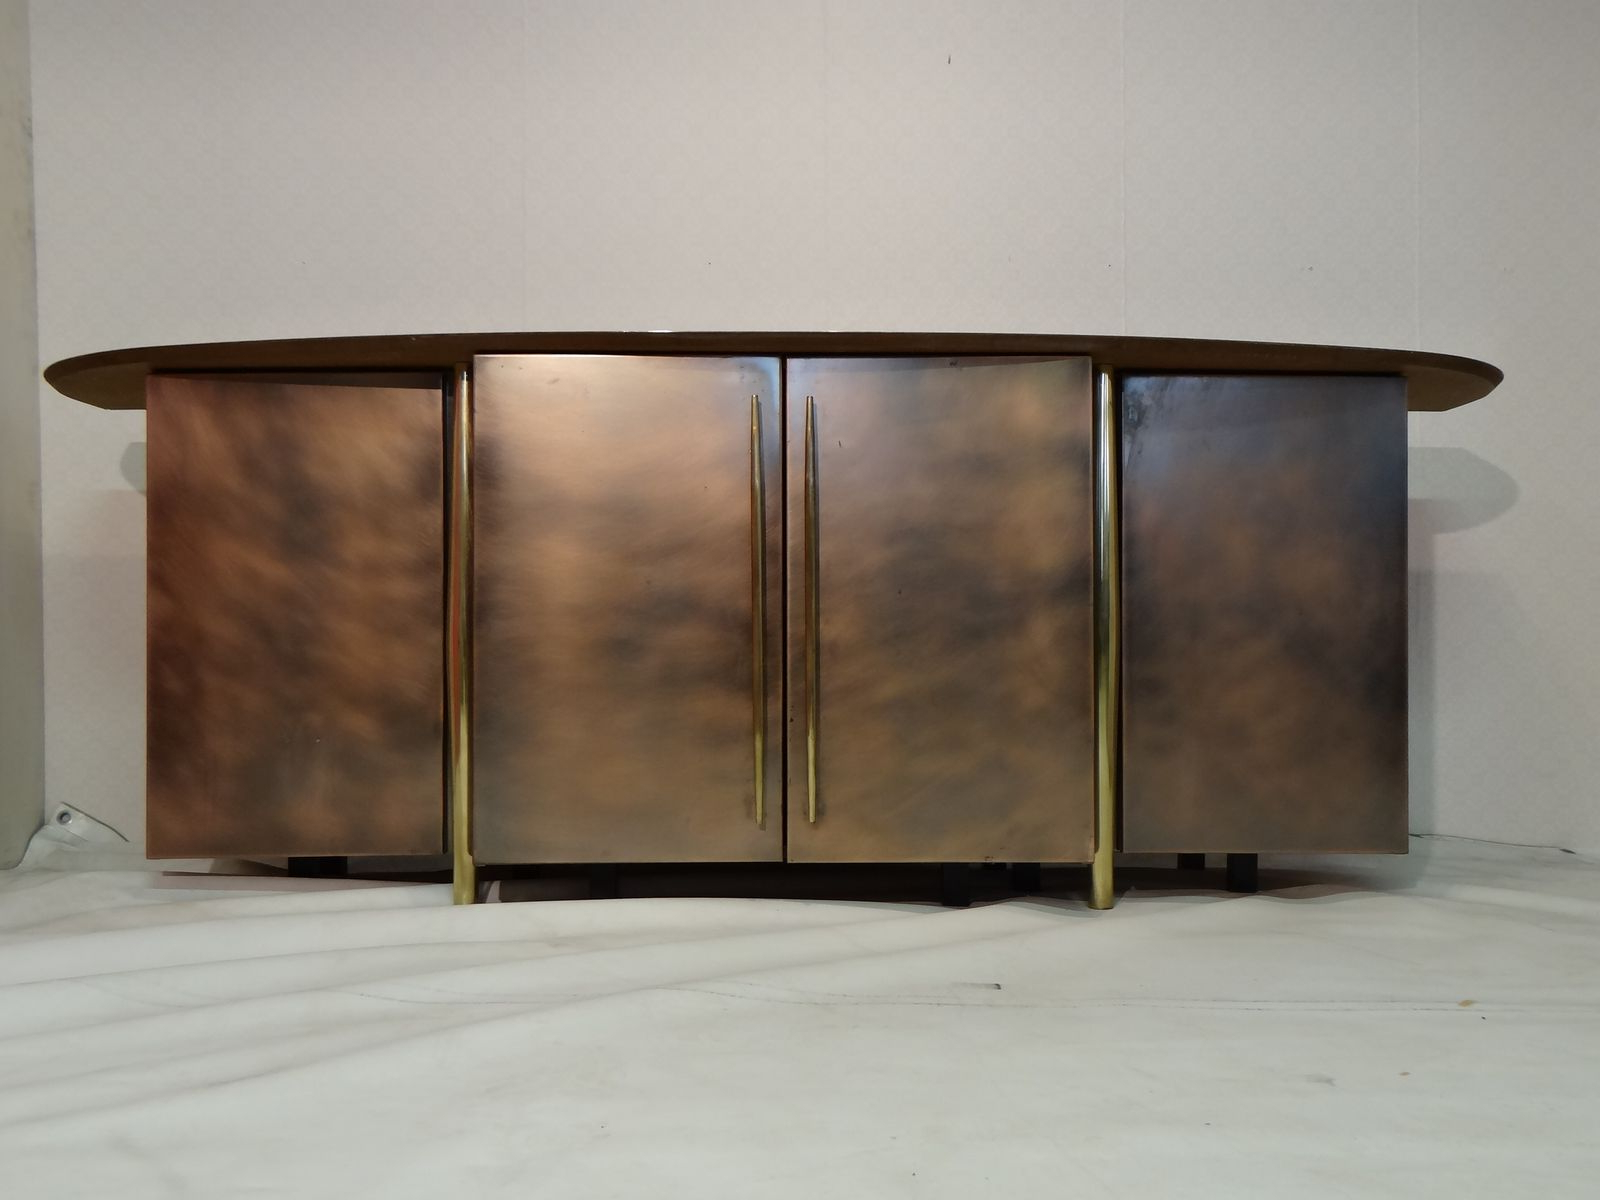 Vintage Brass Sideboard From Belgo Chrom For Sale At Pamono With Current Aged Brass Sideboards (View 17 of 20)